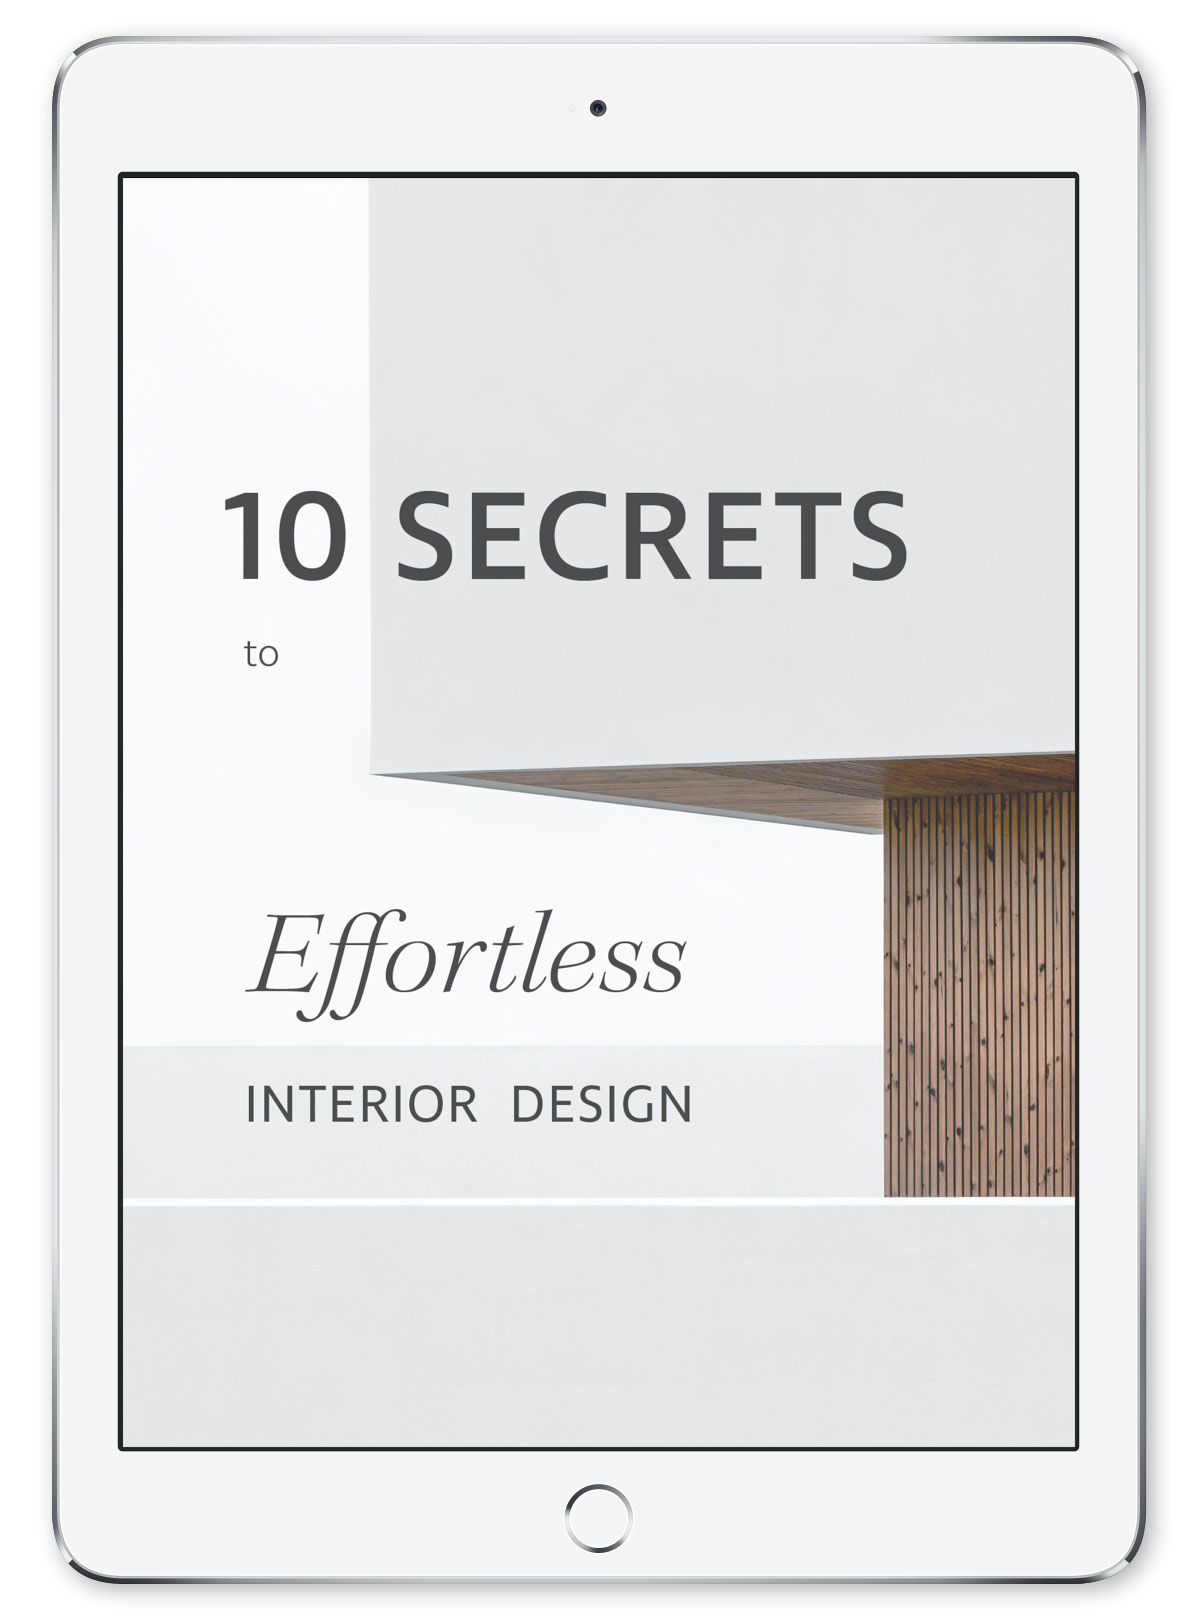 ipad with 10 secrets to effortless interior design guide